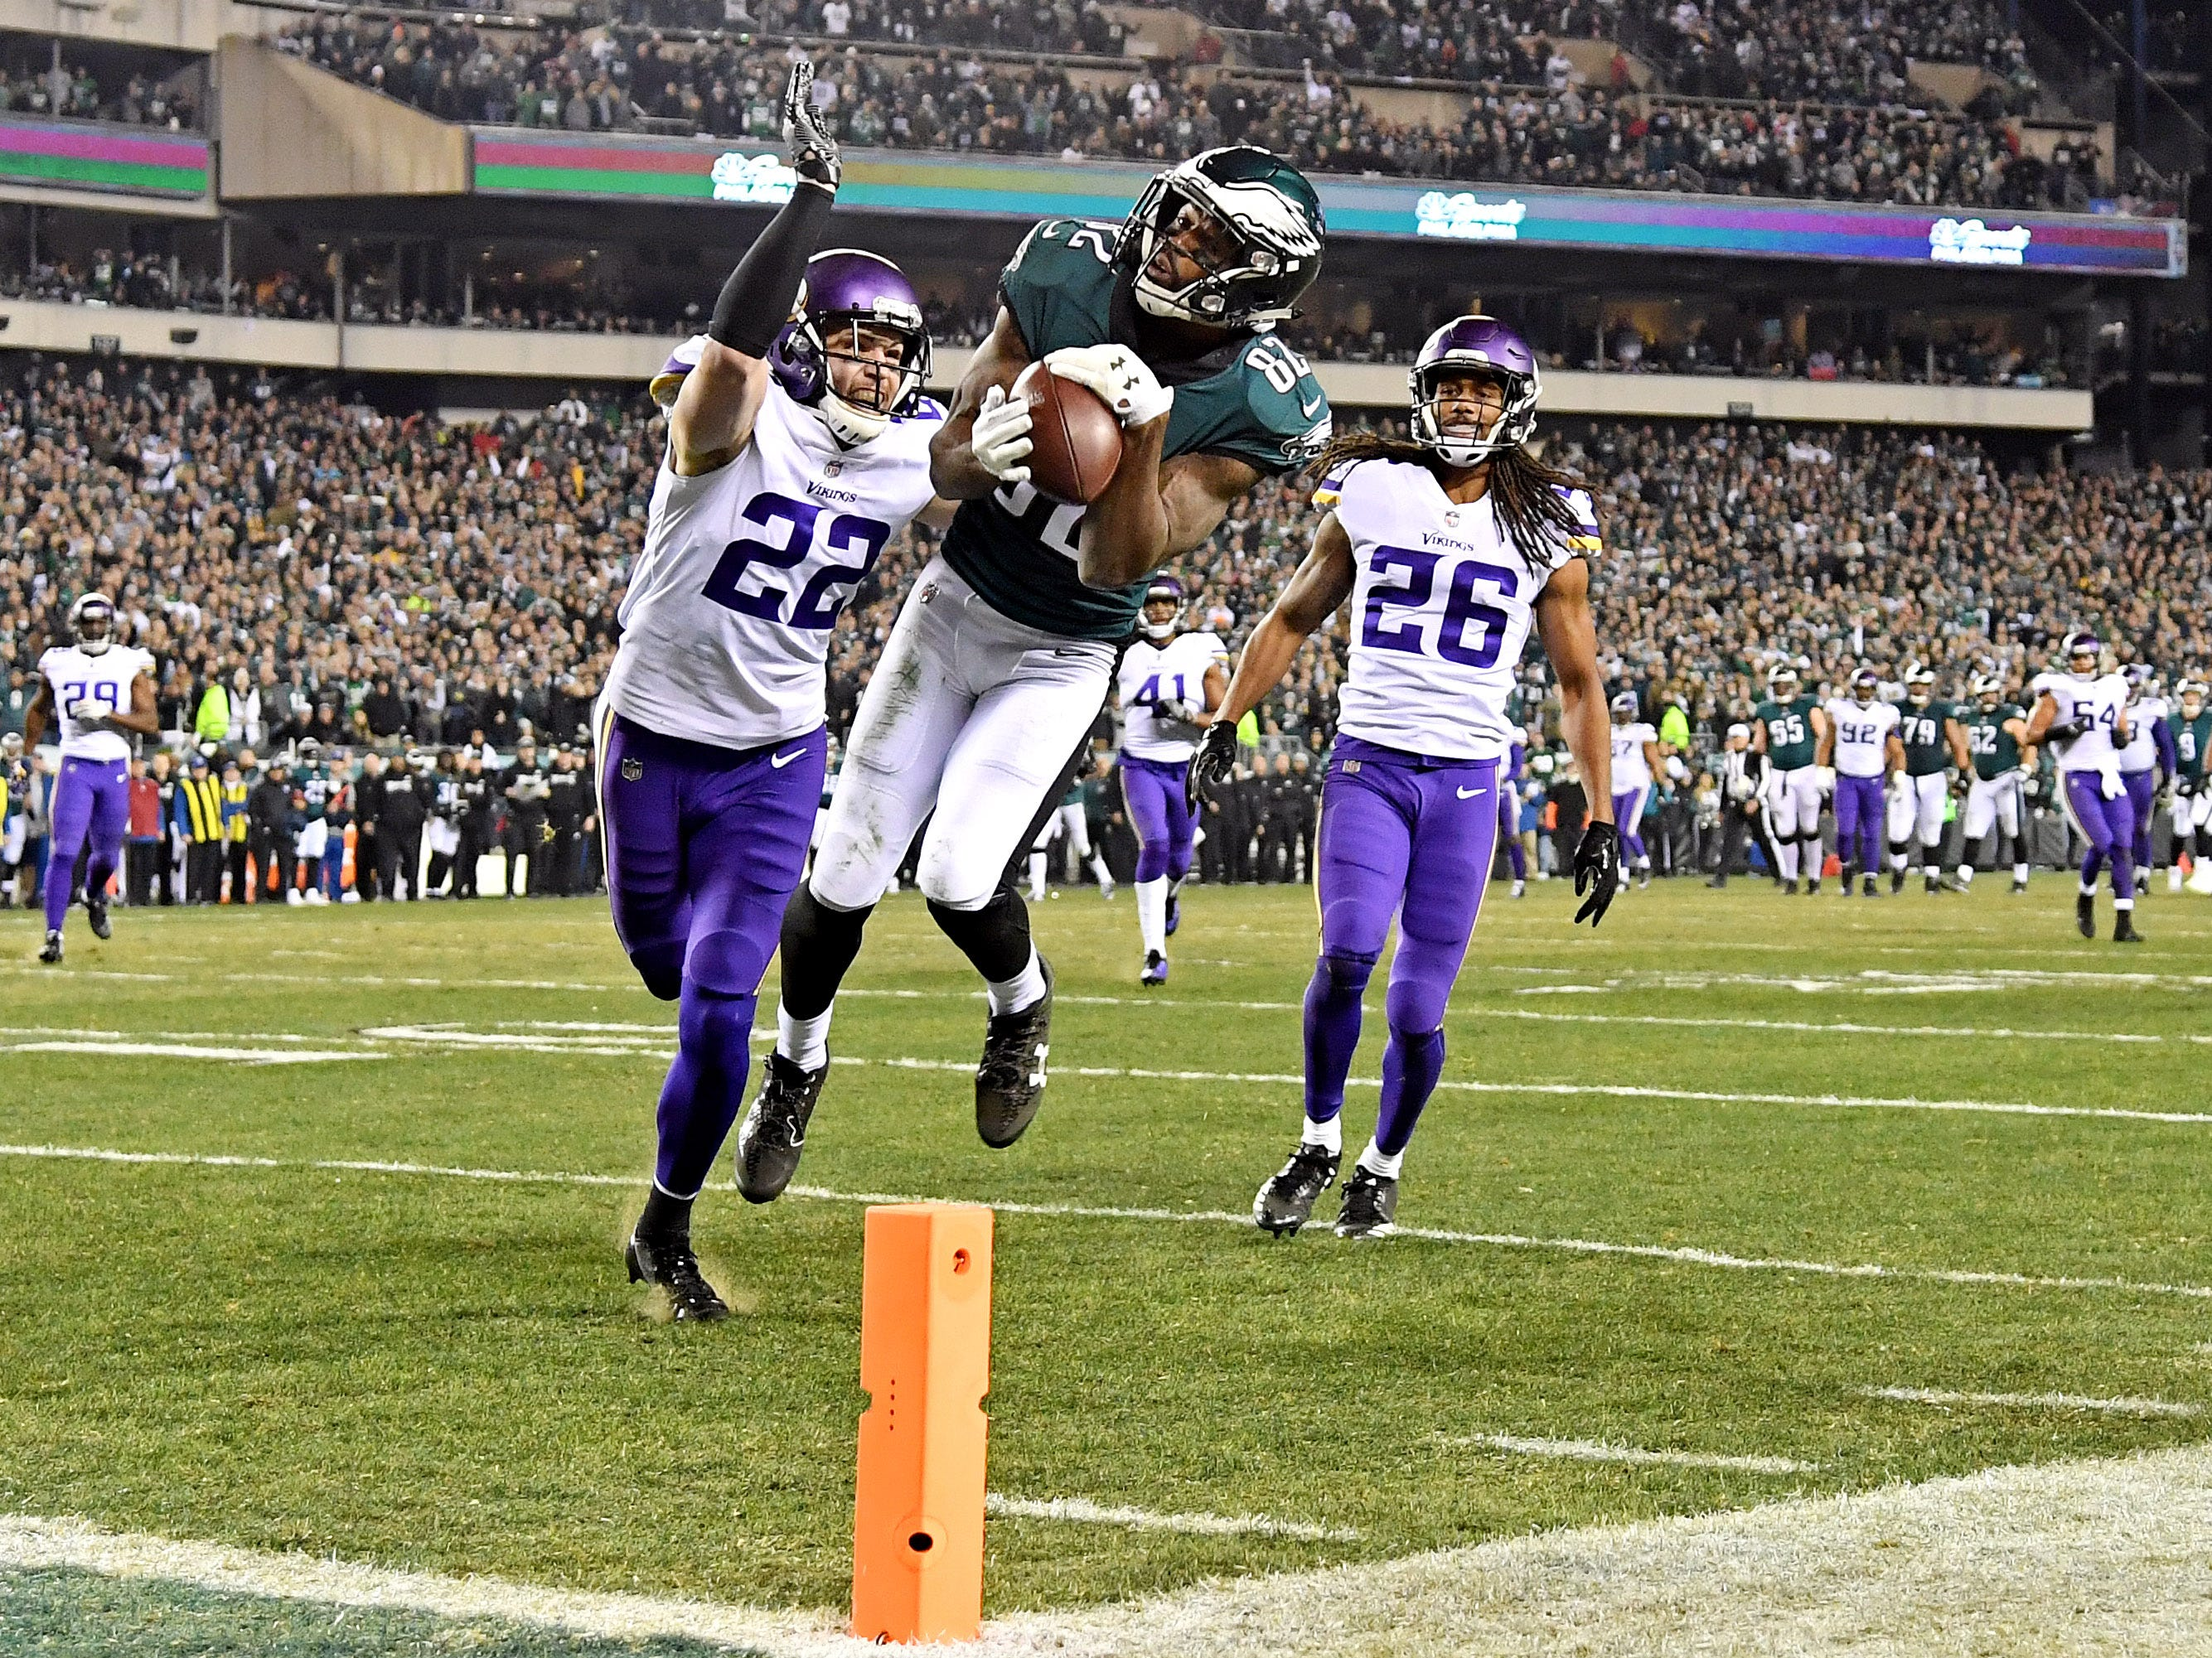 Jan. 21: Philadelphia Eagles wide receiver Torrey Smith (82) catches a touchdown pass against Minnesota Vikings free safety Harrison Smith (22) during the third quarter in the NFC Championship game at Lincoln Financial Field.